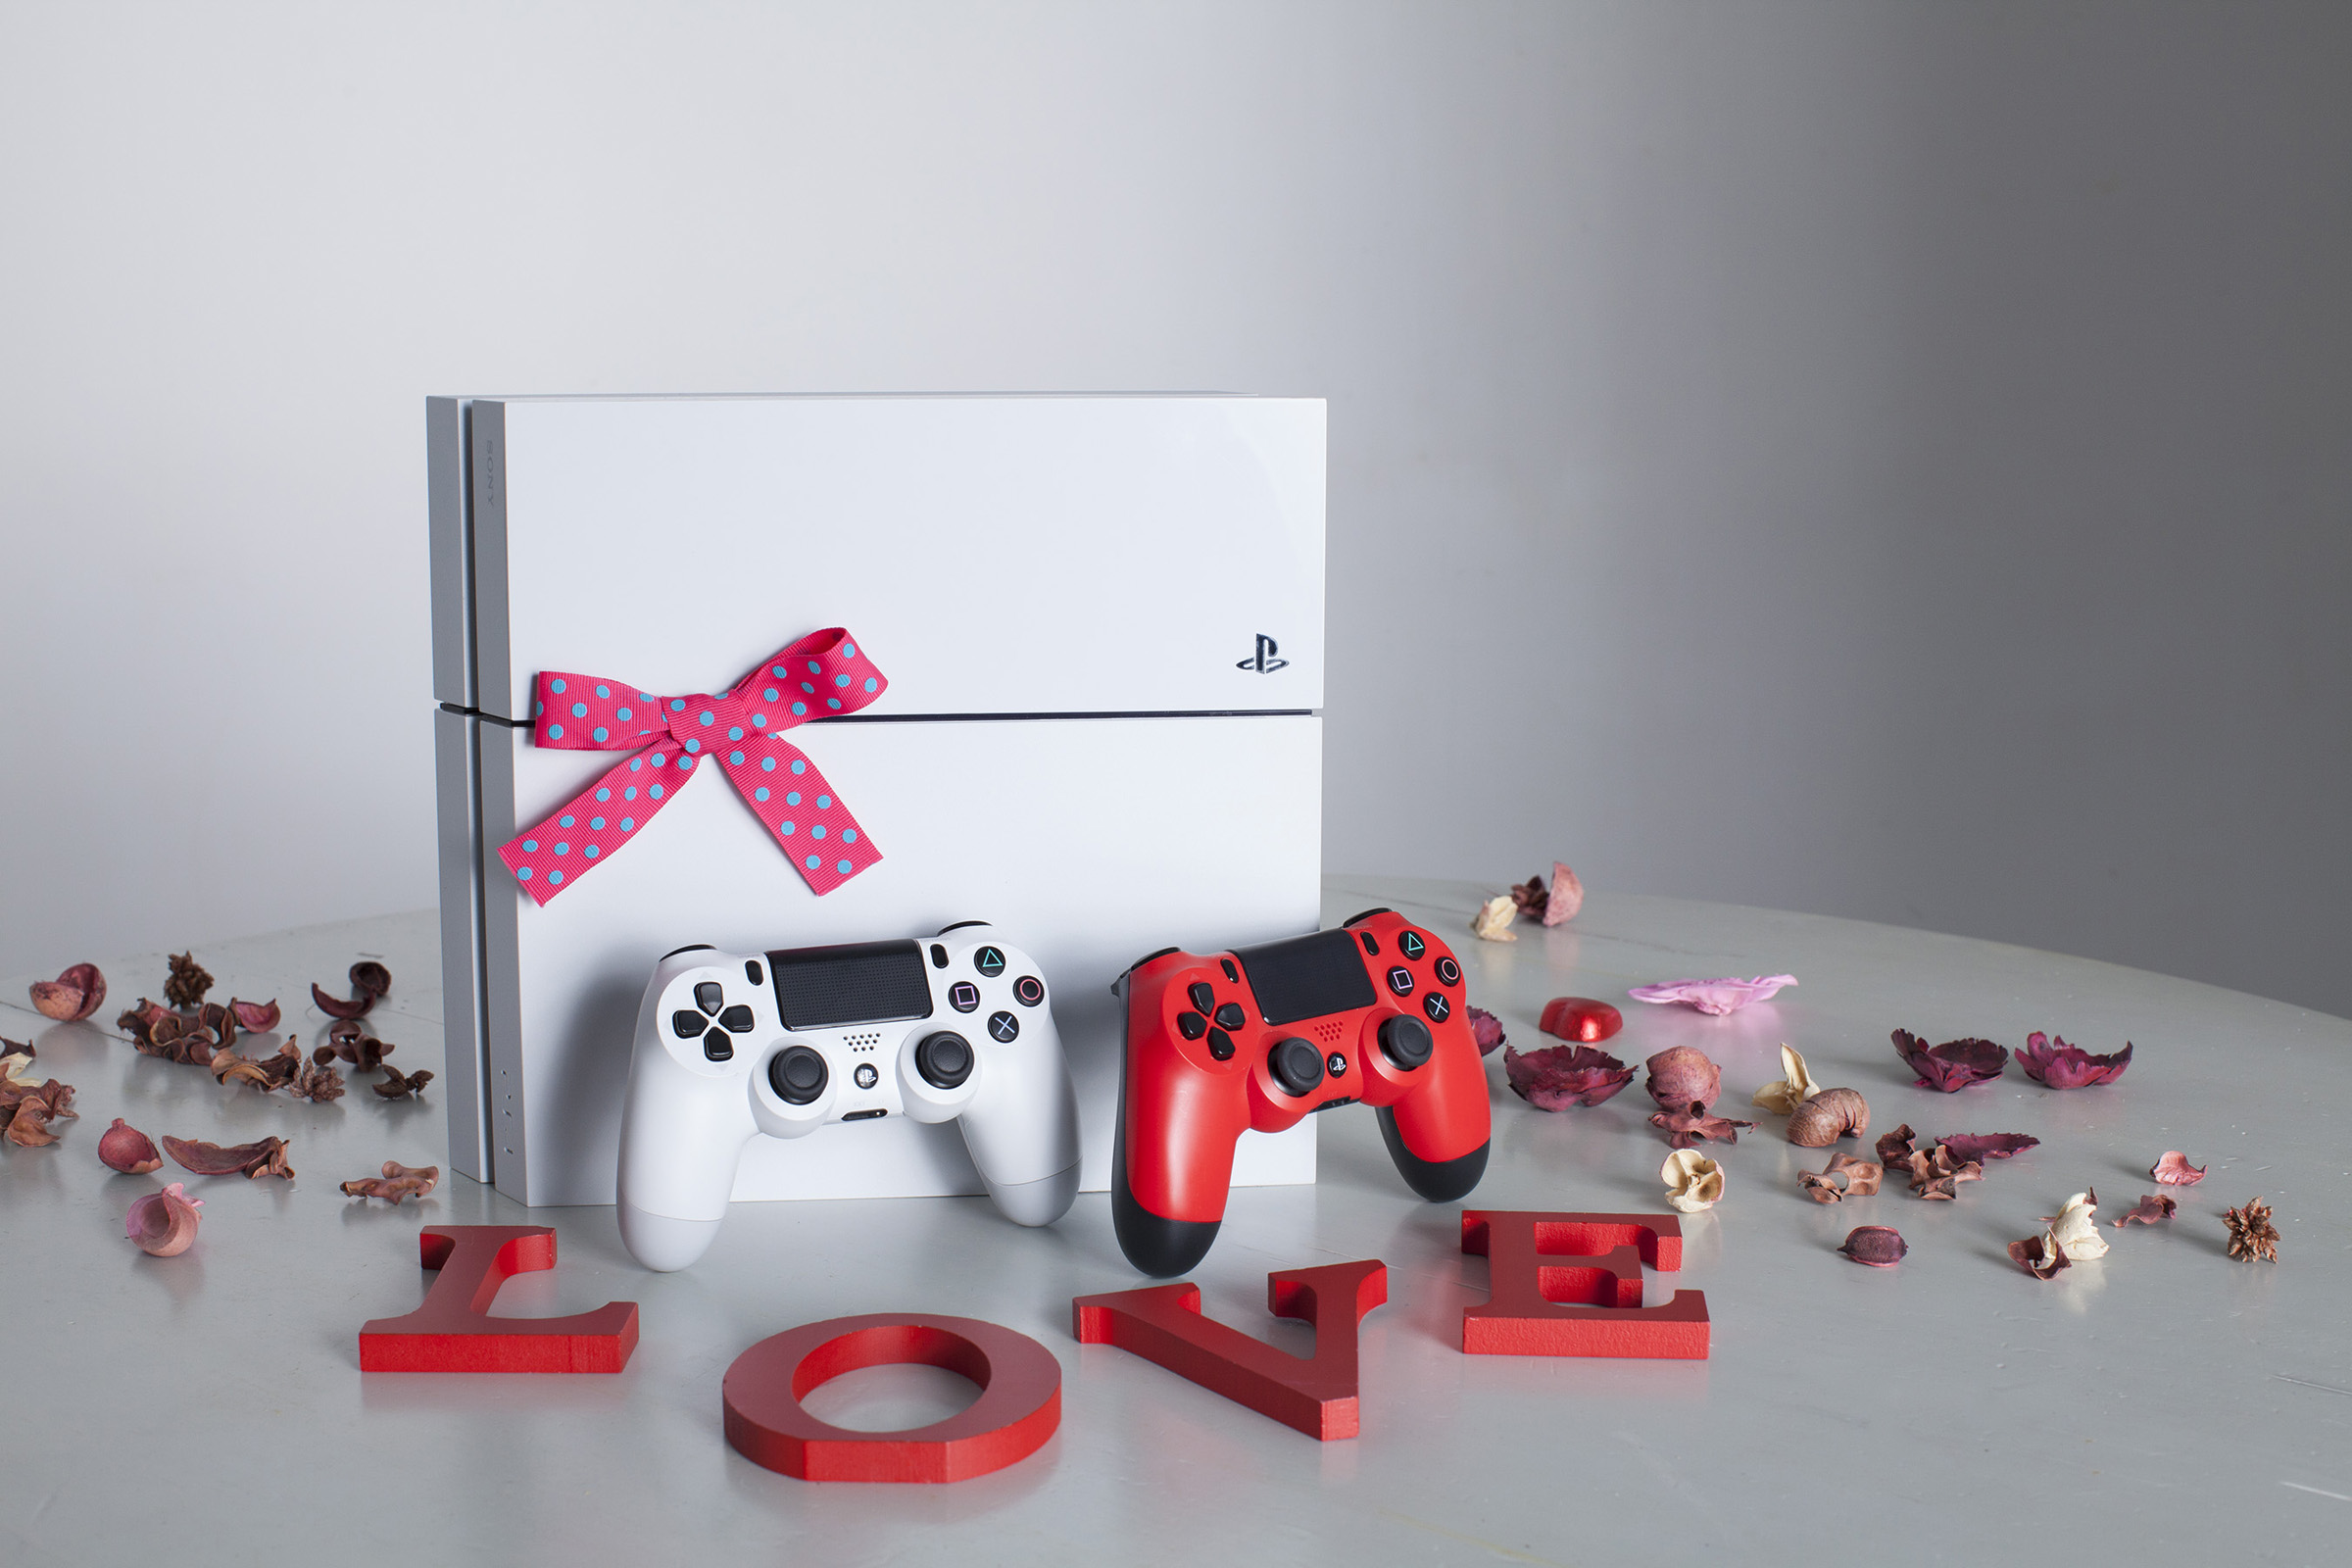 play-station-4-valentine's-day-gift-ideas-for-him